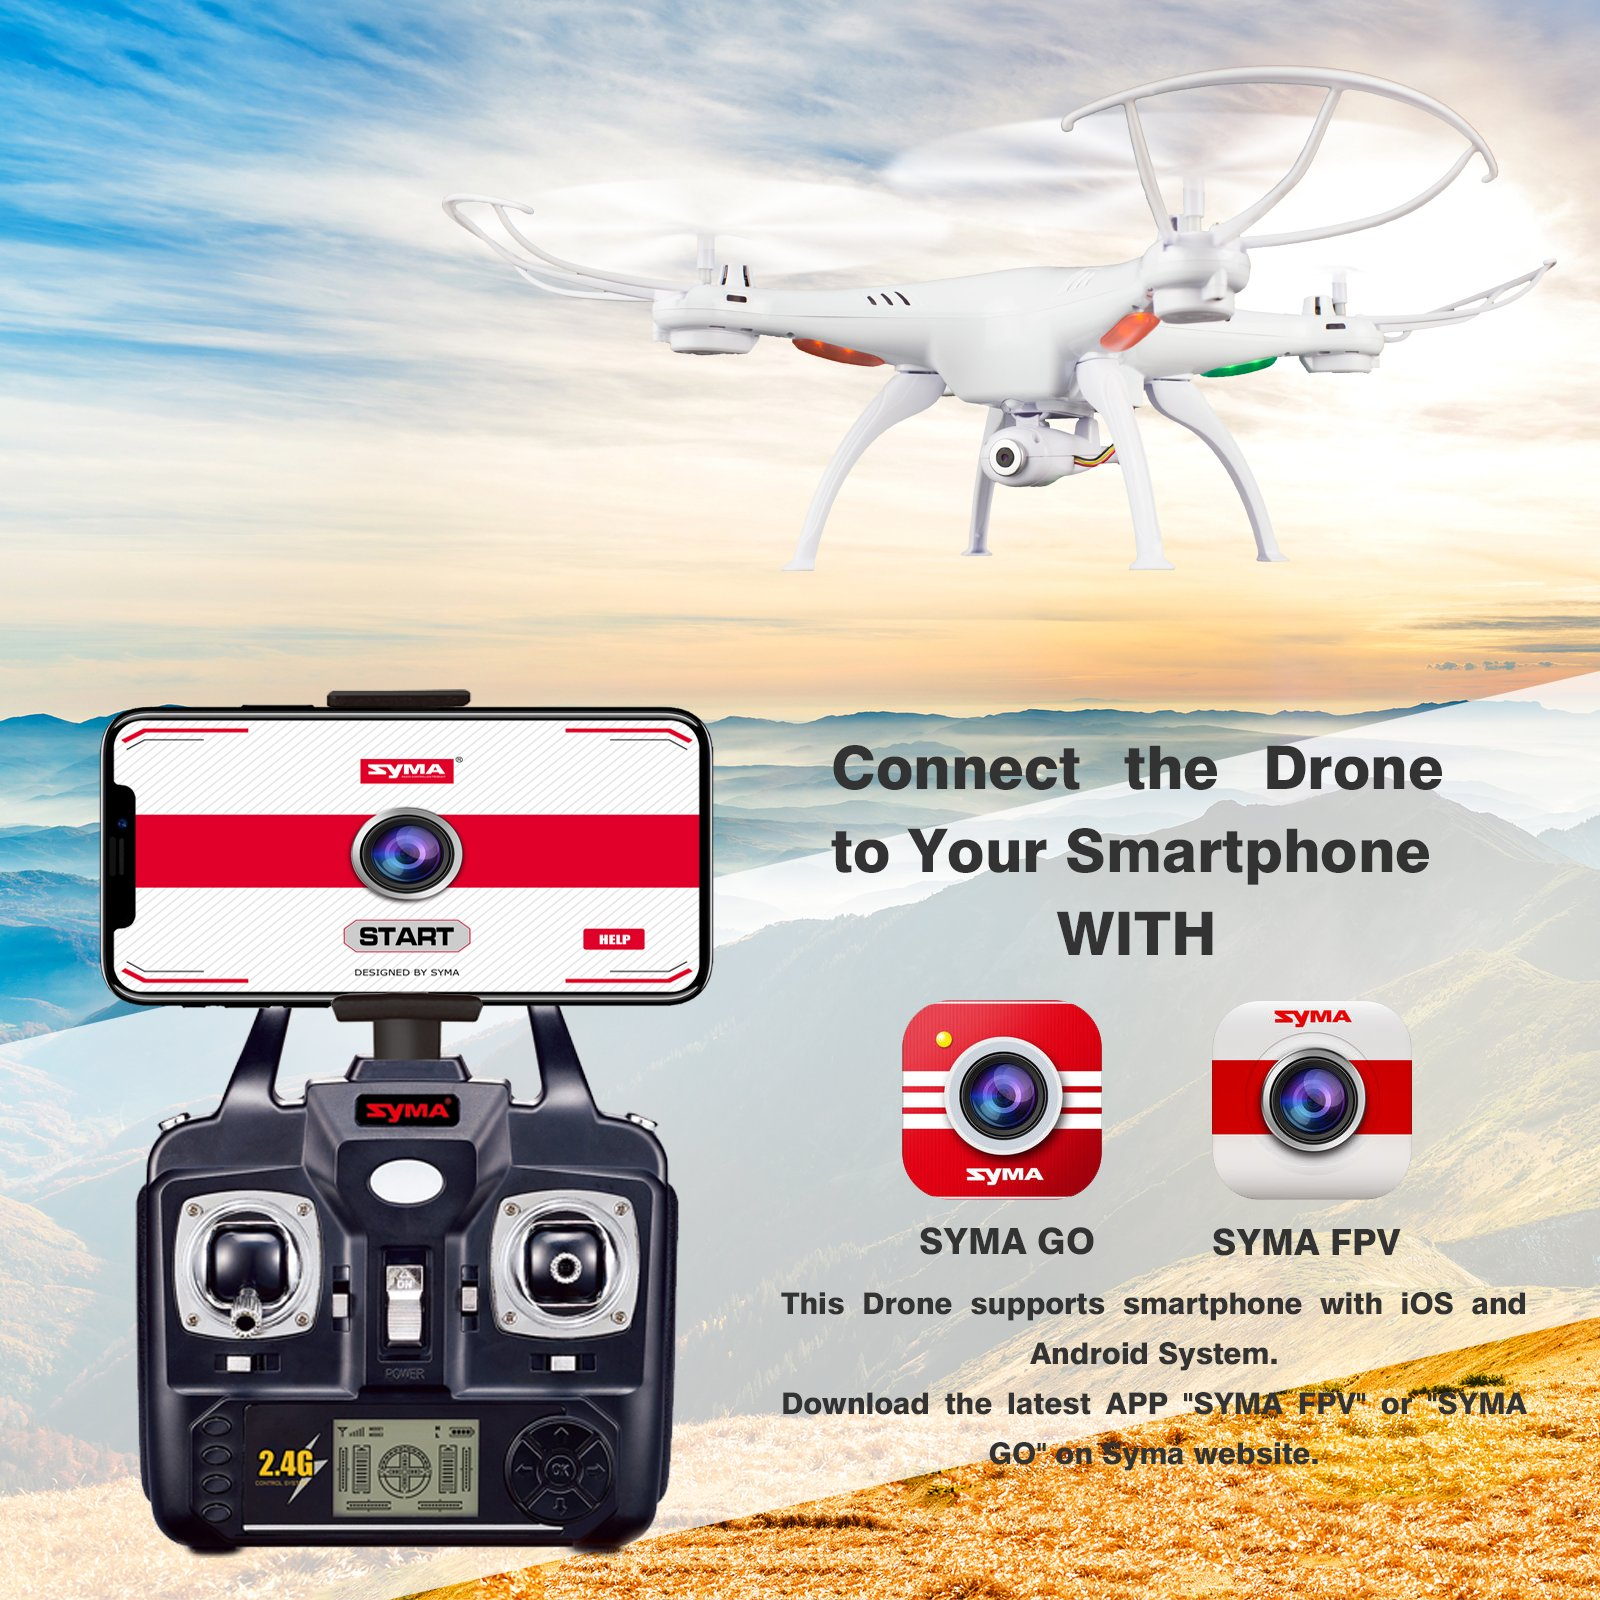 Cheerwing Syma X5SW-V3 FPV Explorers2 2.4Ghz 4CH 6-Axis Gyro RC Headless Quadcopter Drone UFO with HD Wifi Camera (White) by Cheerwing (Image #8)